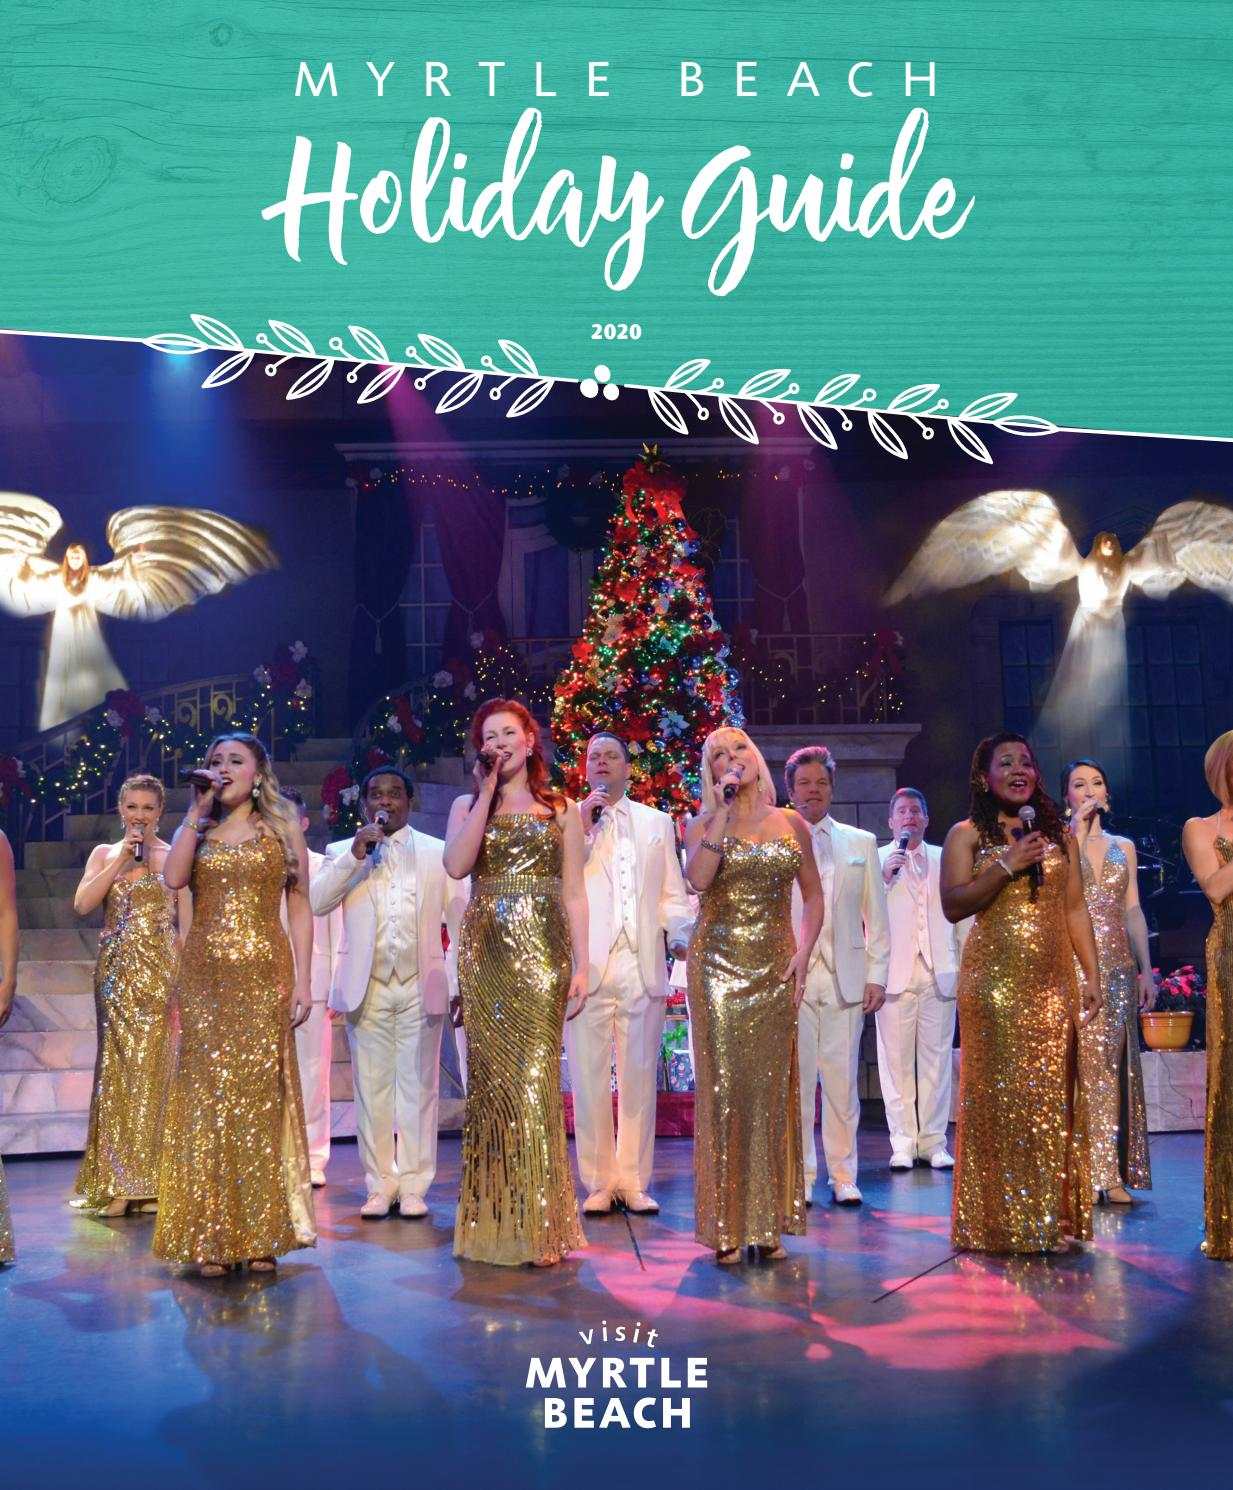 Christmas Events Around Myrtle Beach 2020 2020 Myrtle Beach Holiday Guide by The Group Travel Leader, Inc